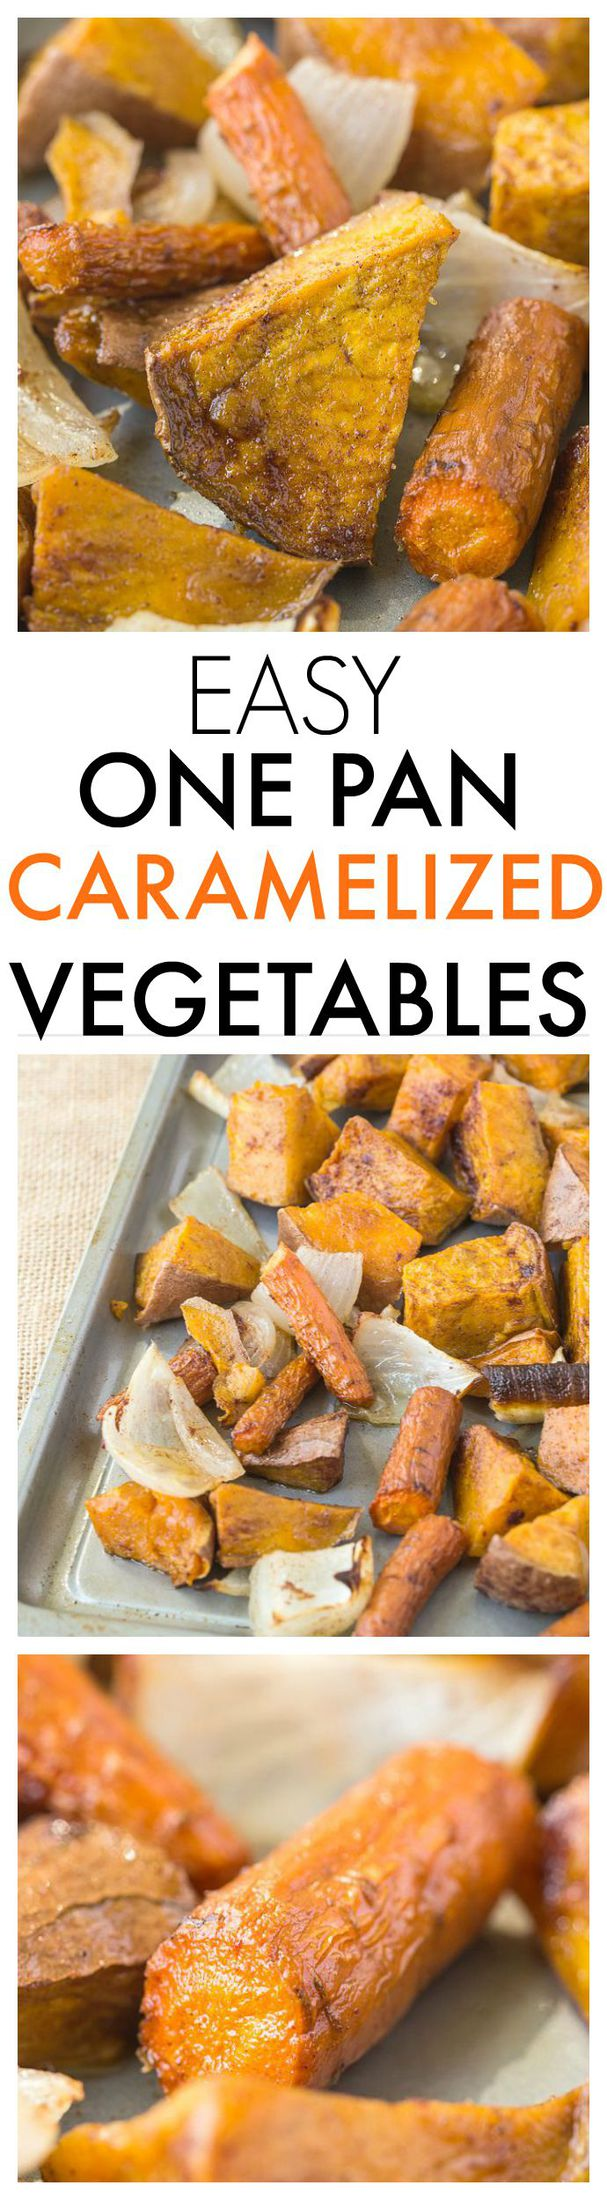 Easy One Pan Caramelized Vegetables- A set and forget recipe which takes two minutes- You'll never eat vegetables any other way again! {paleo, vegan, gluten-free}-thebigmansworld.com